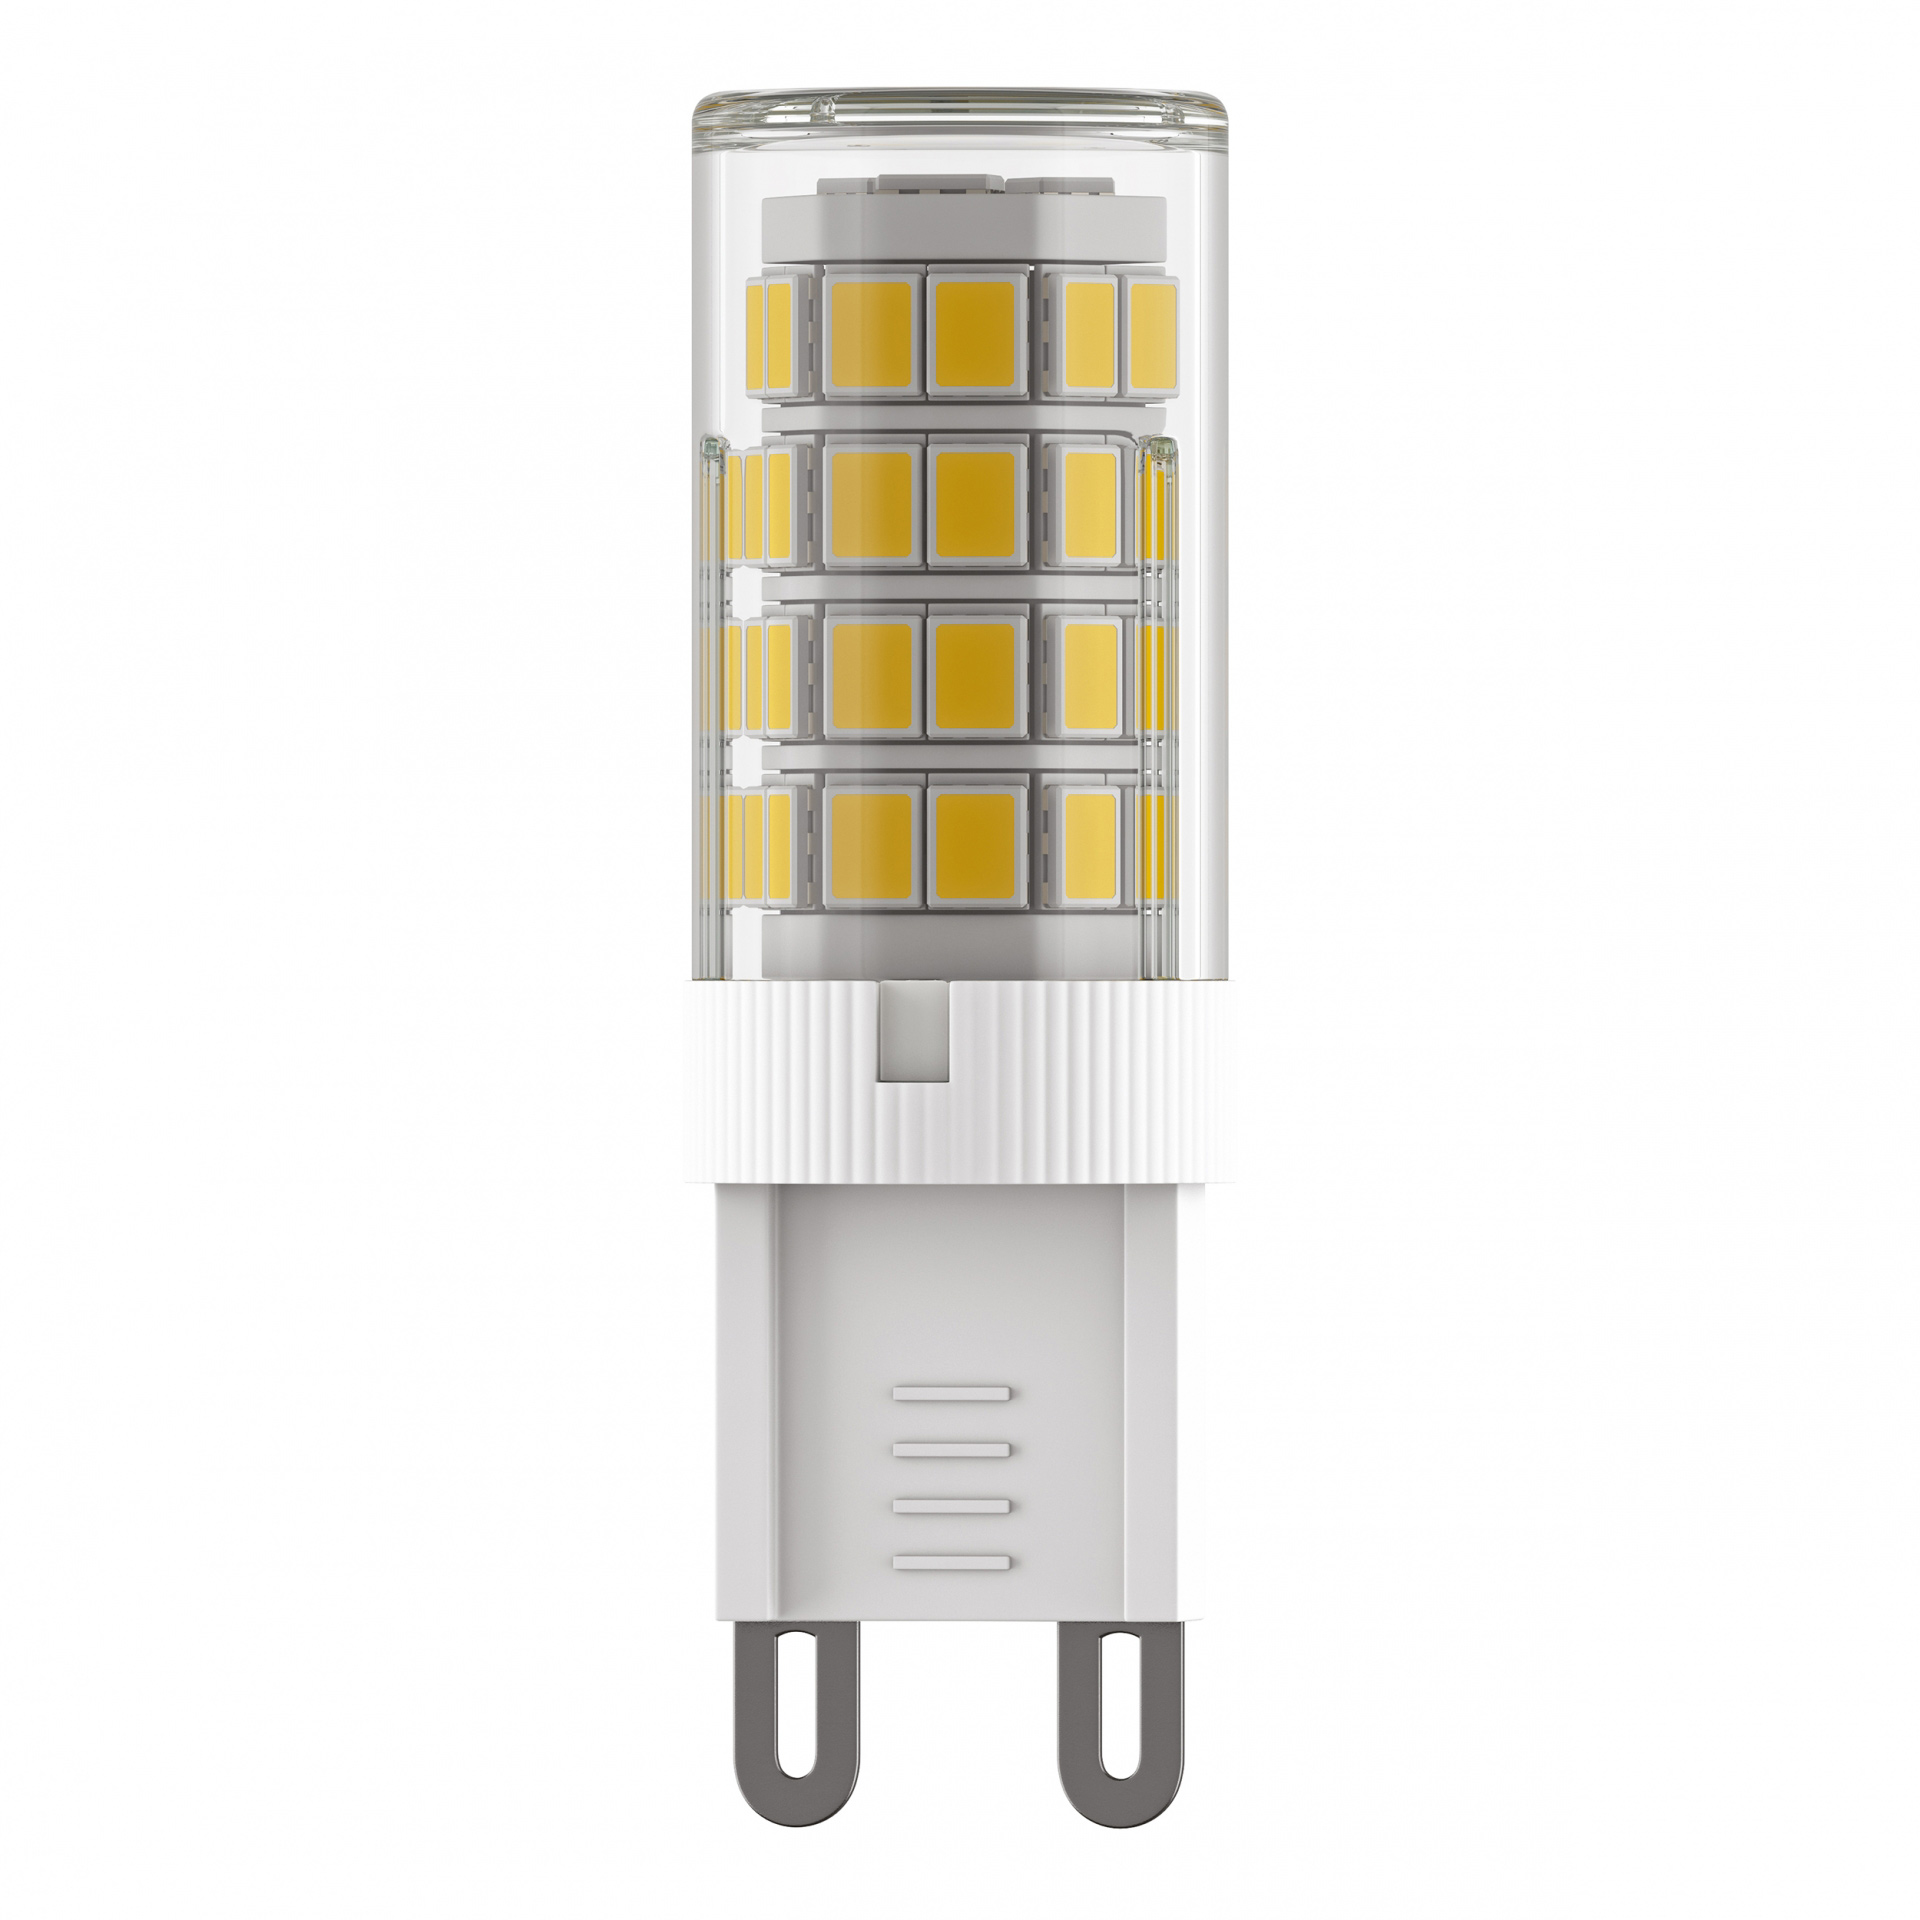 Лампа LED 220V JC G9 6W=60W 492LM 360G CL 4000K 20000H Lightstar 940454